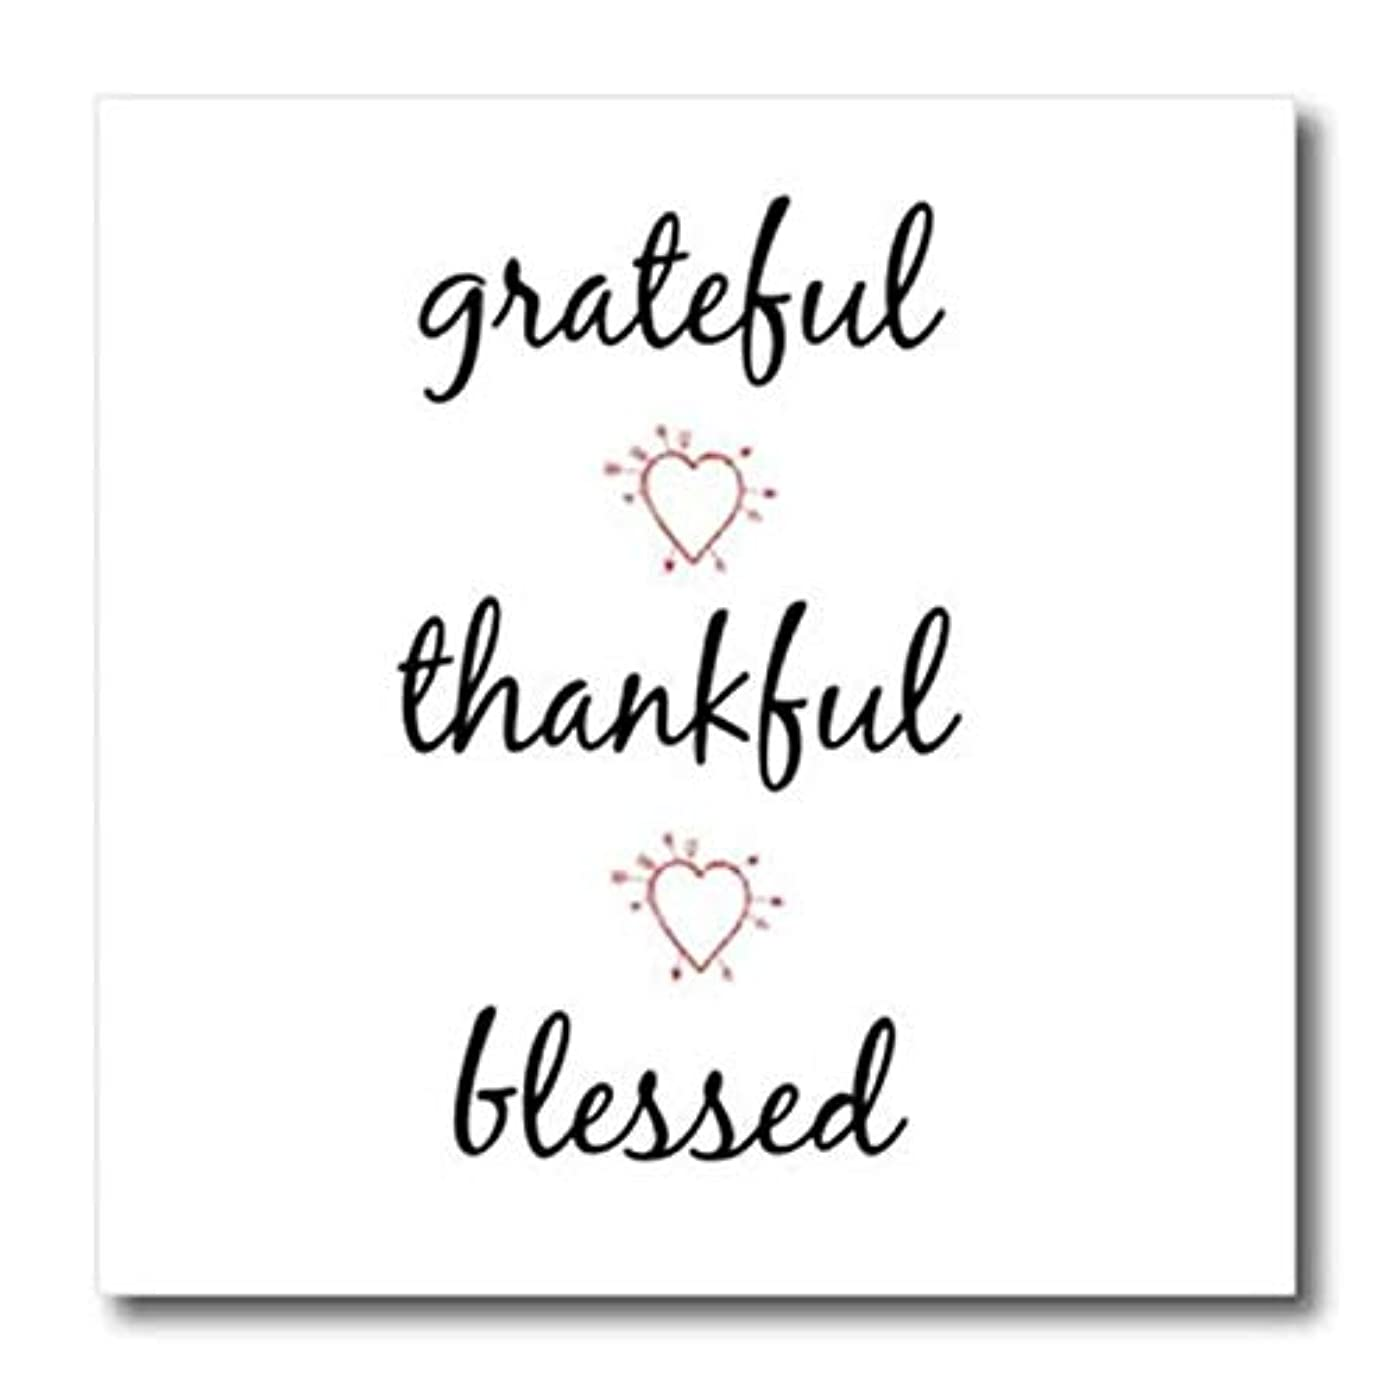 3dRose ht_265914_2 Grateful, Thankful, Blessed, Black Letters with Picture of Hearts Iron On Heat Transfer, 6